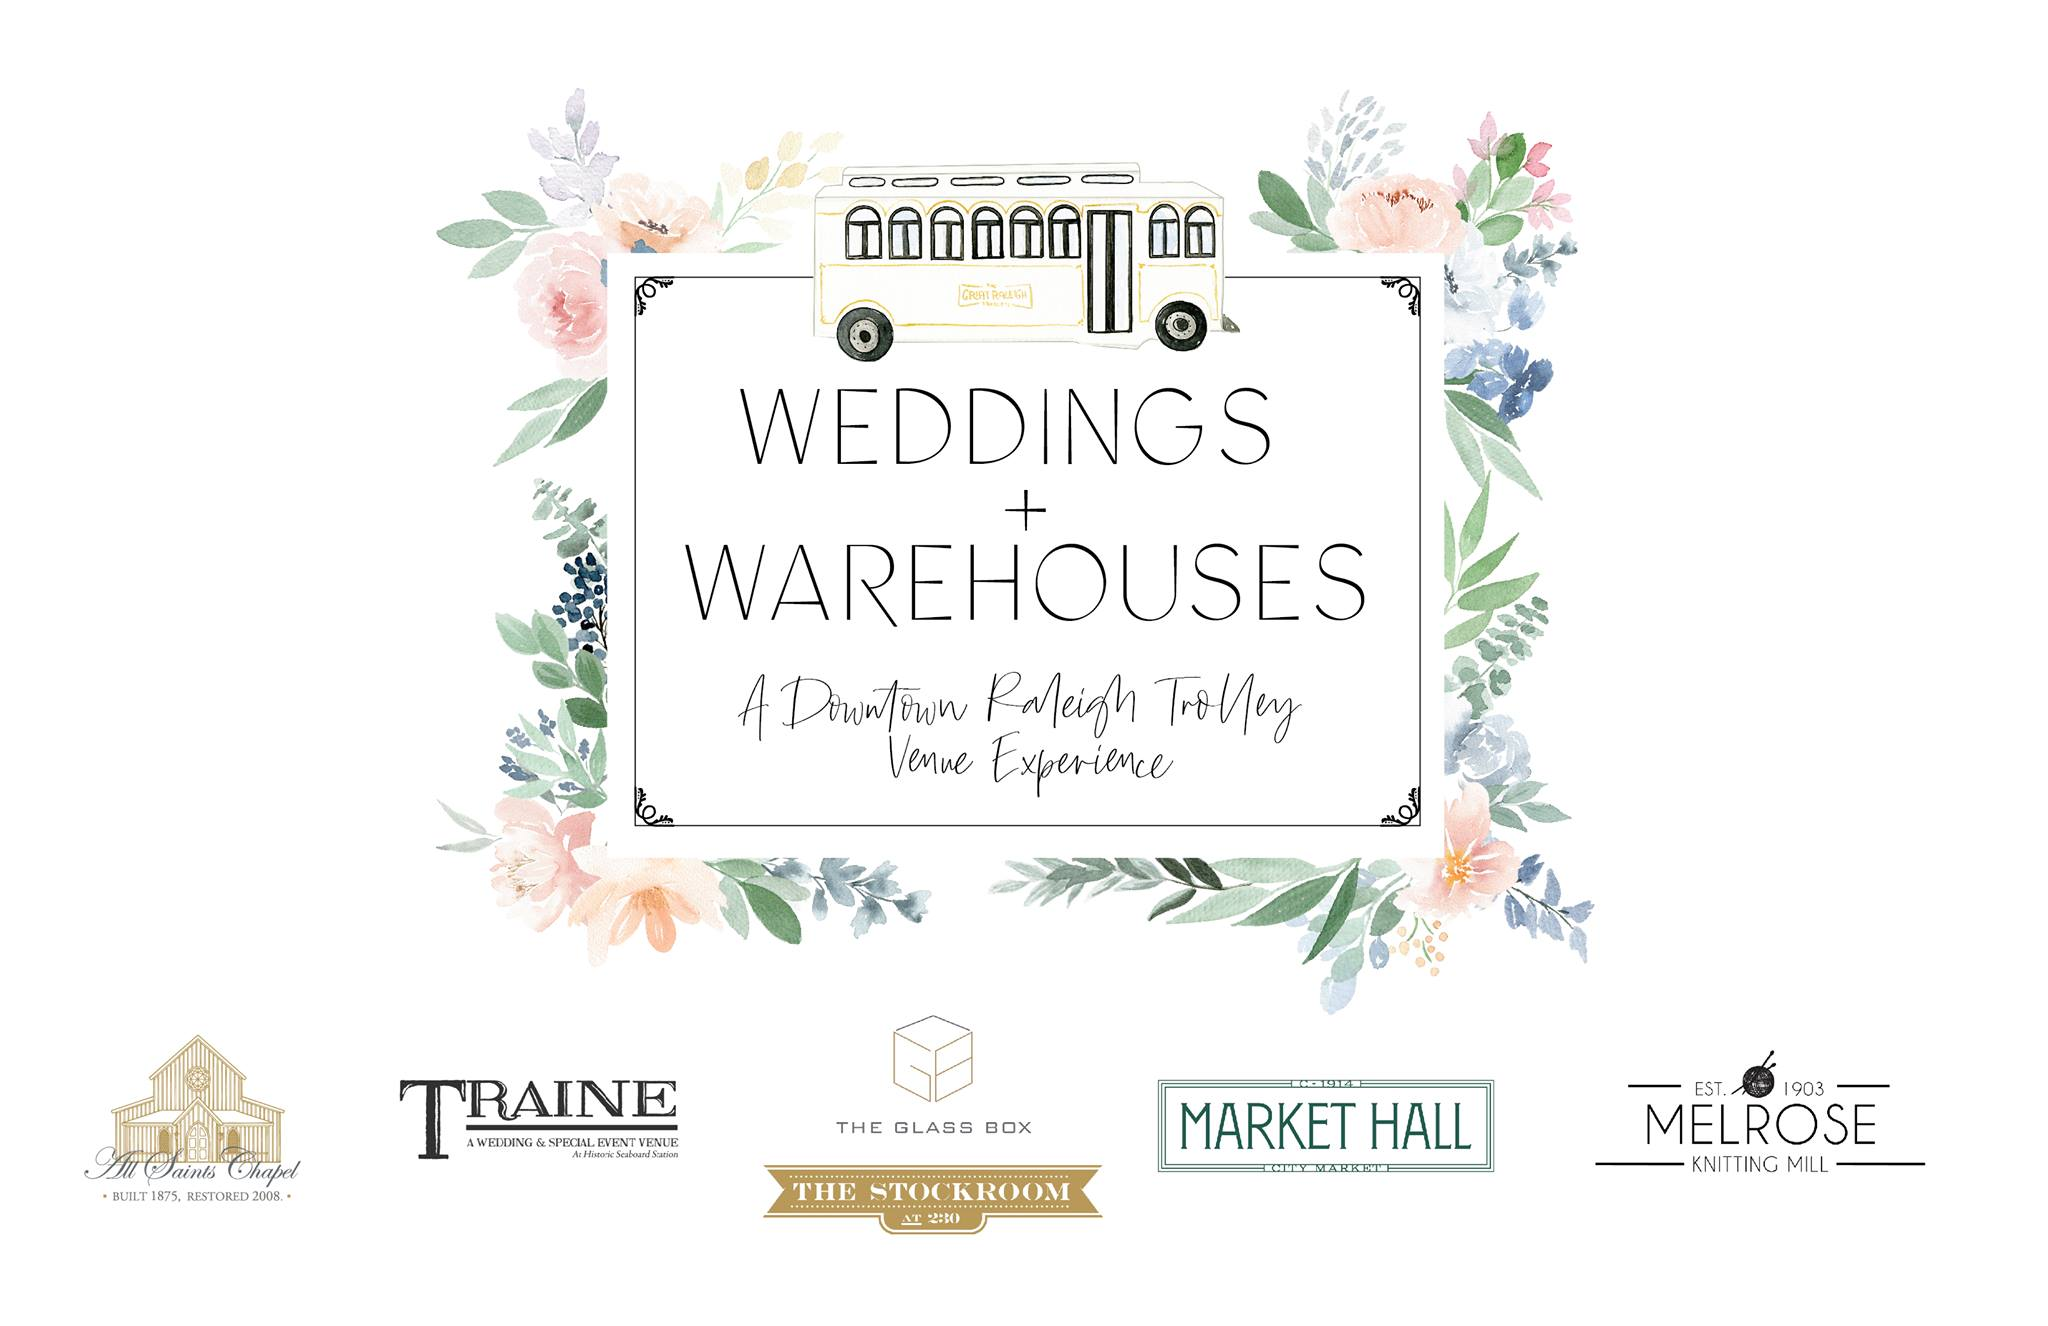 Wedding +Warehouses Featuring Melrose Knitting Mill